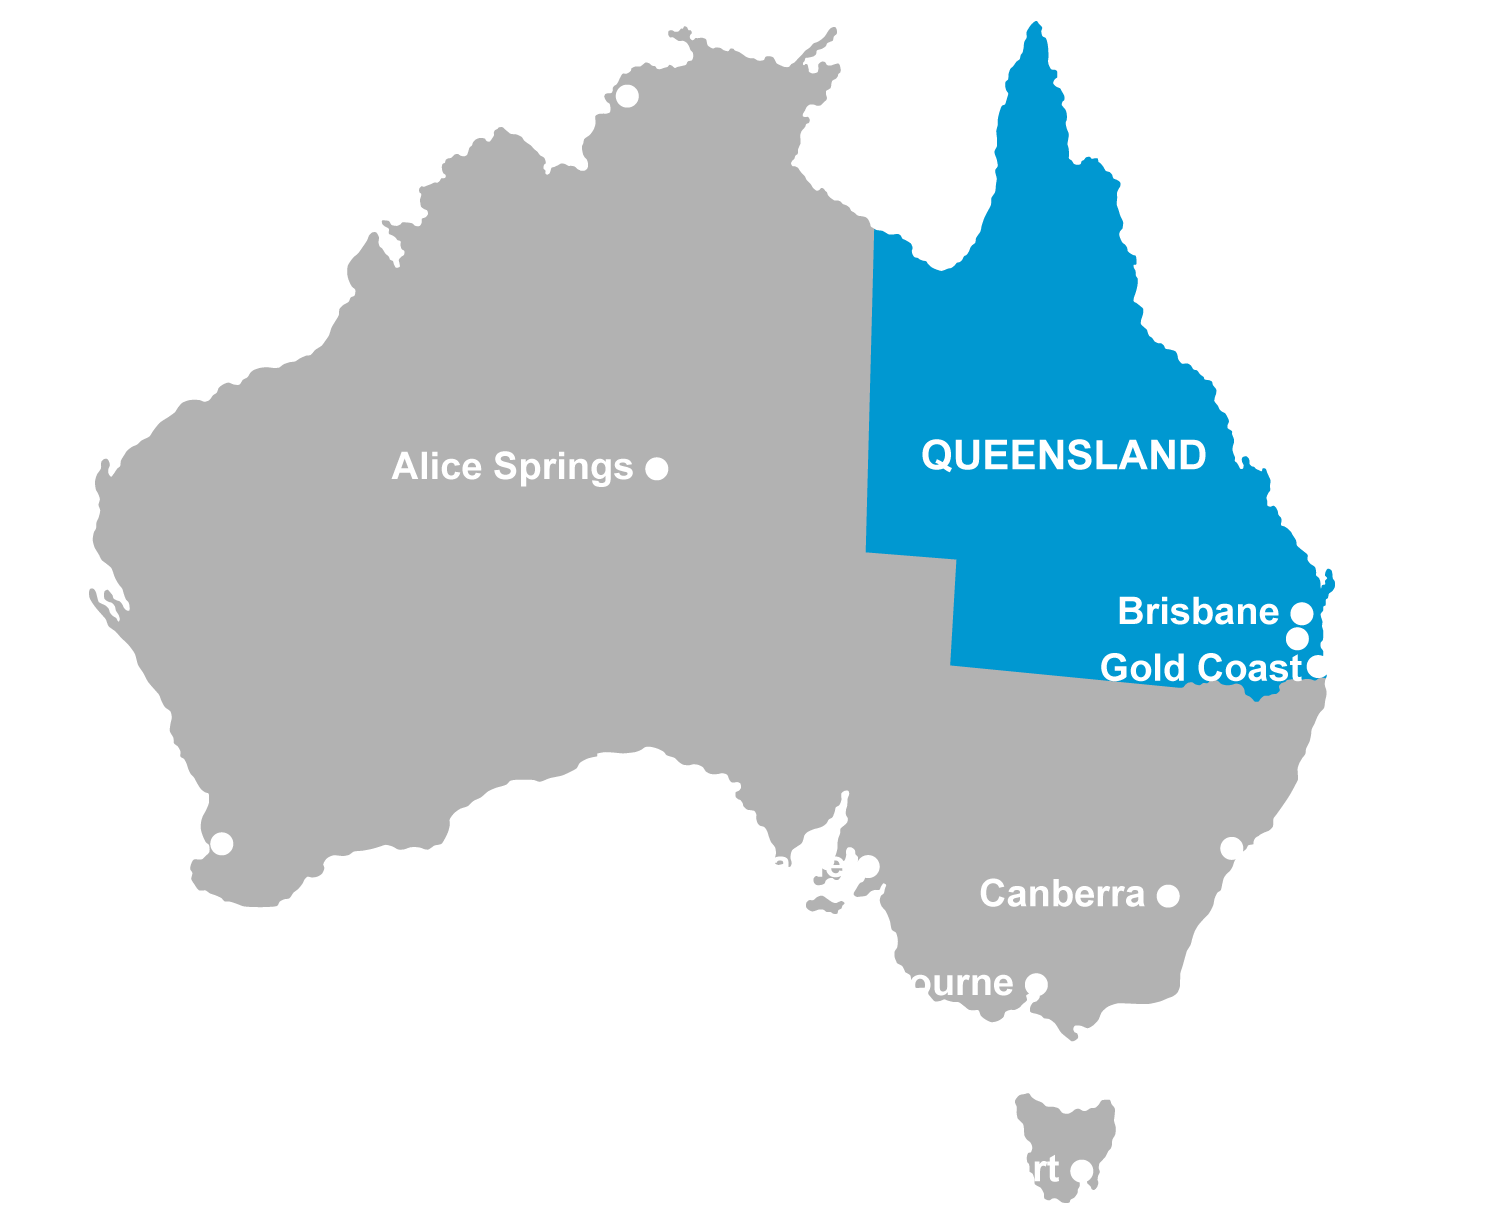 Map with Queensland highlighted in blue